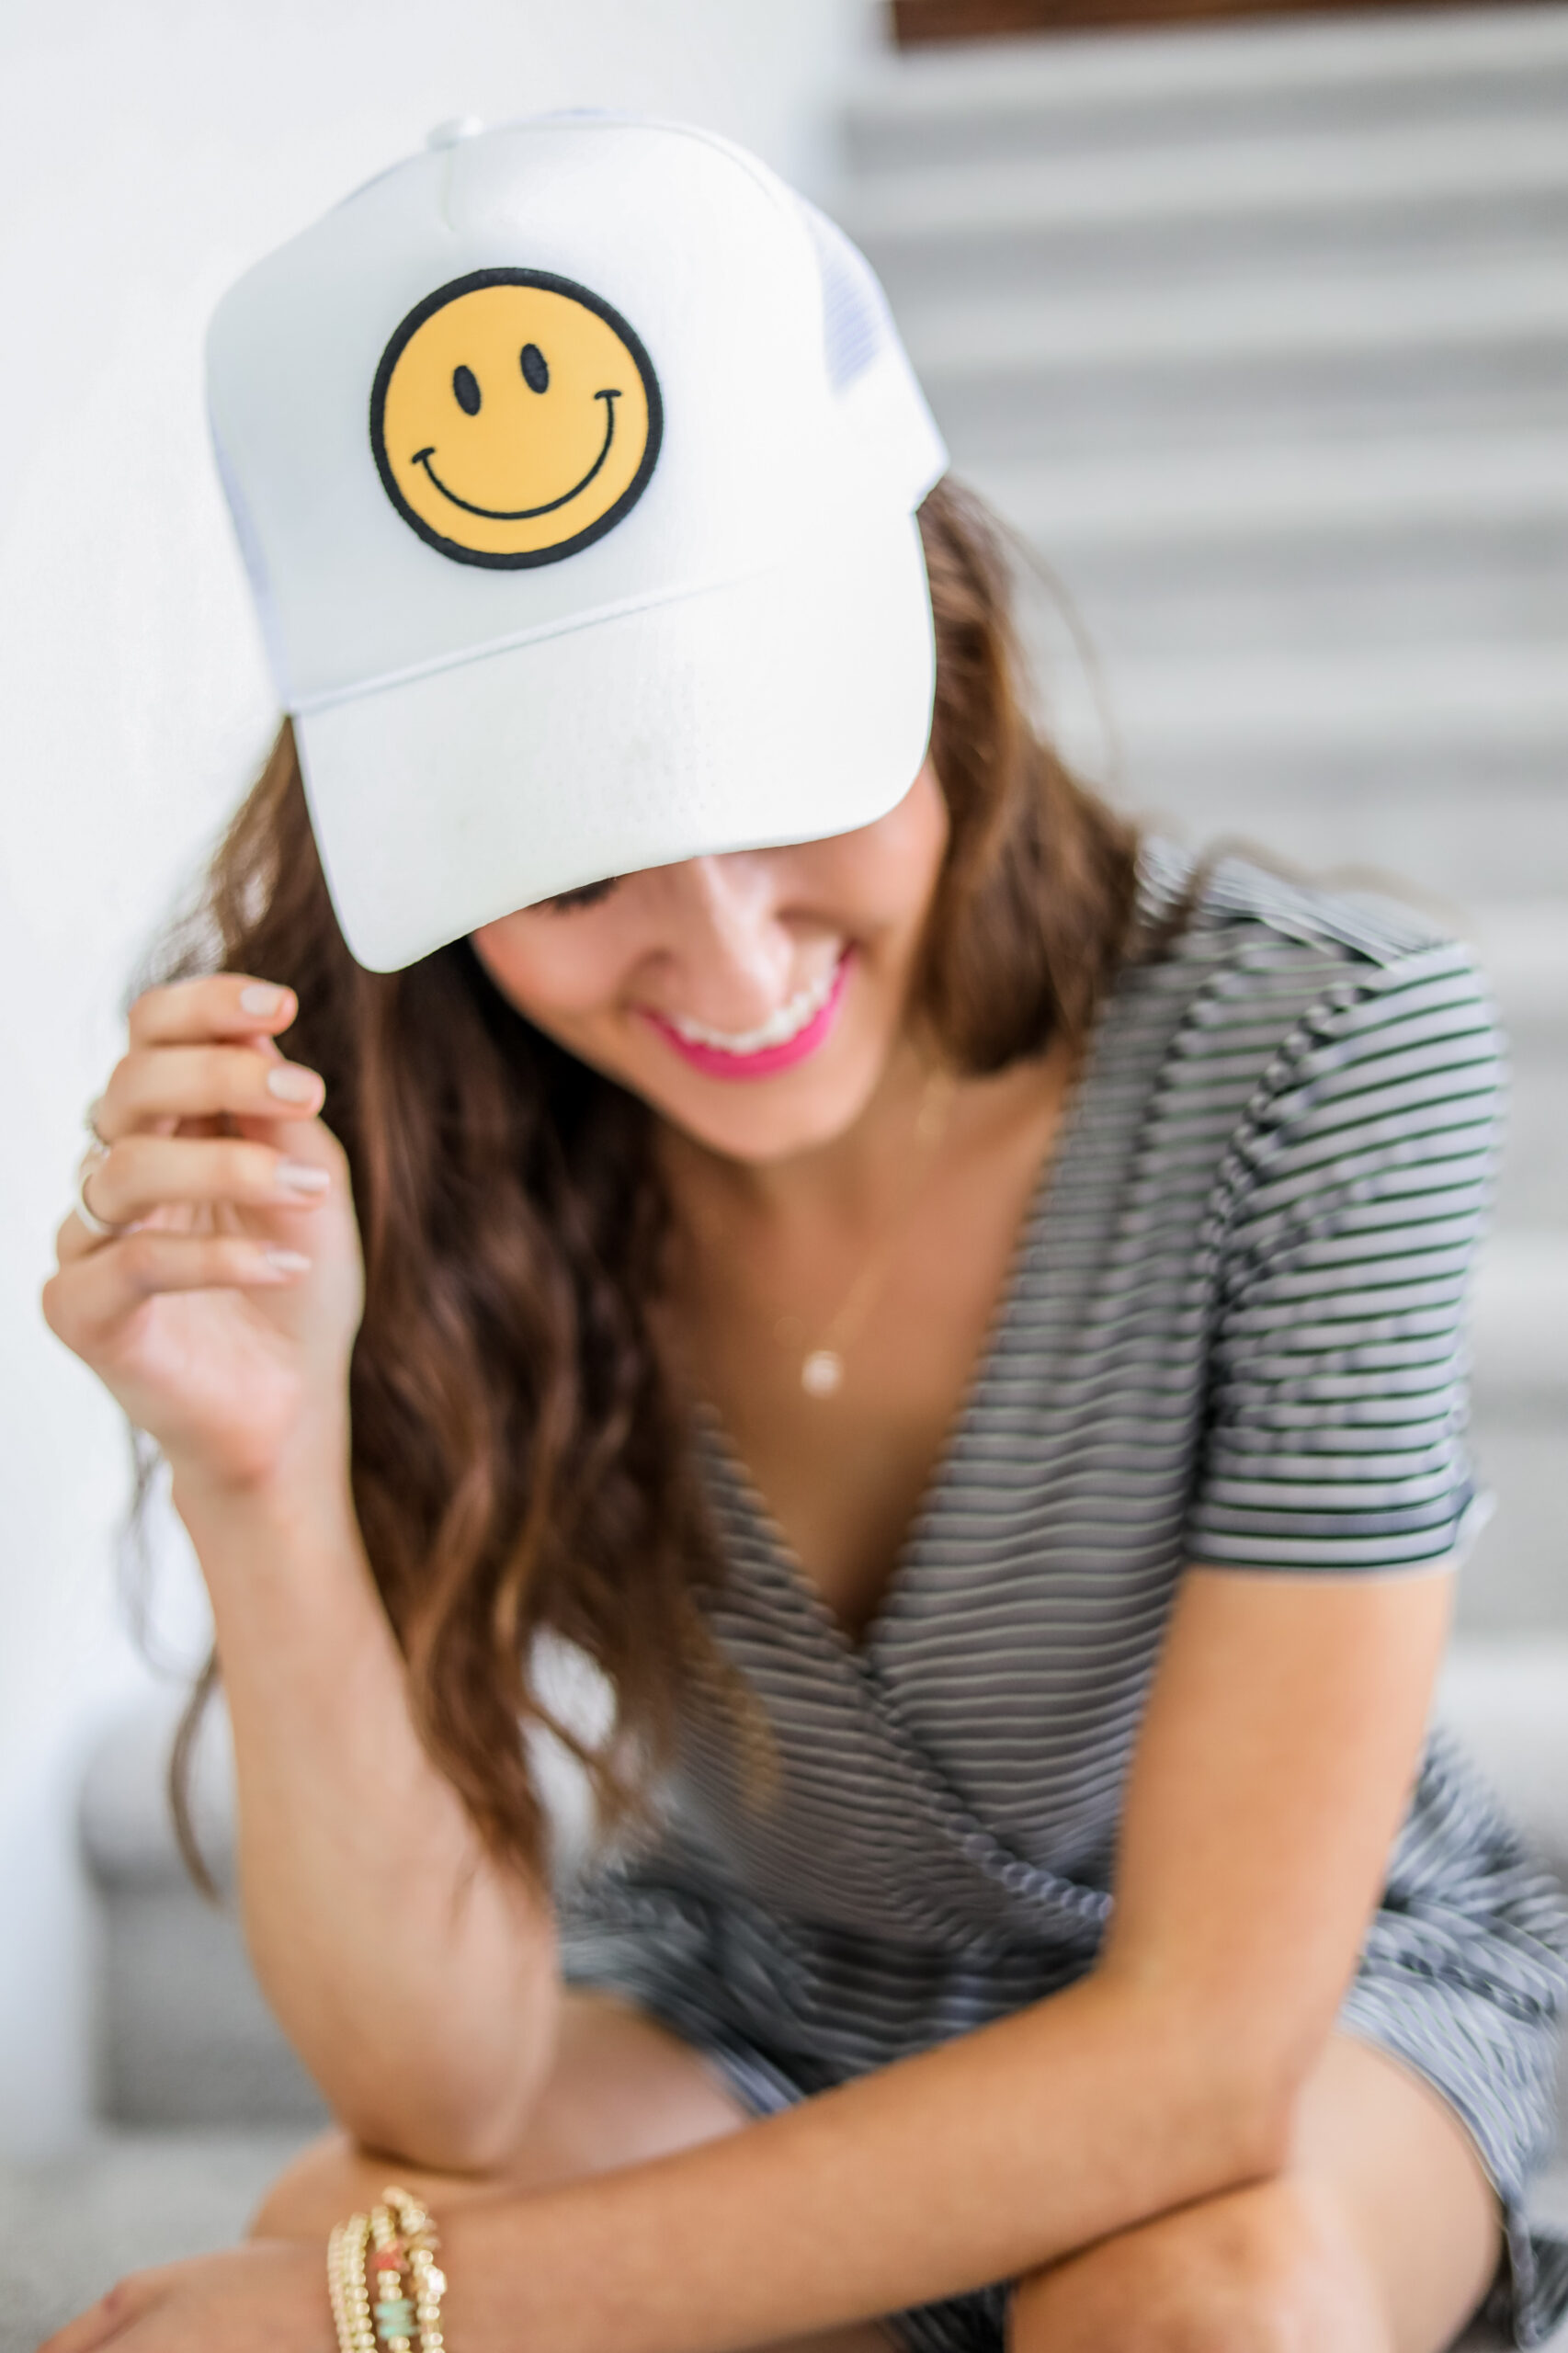 Etsy Smiley face trucker hat - from a small shop!